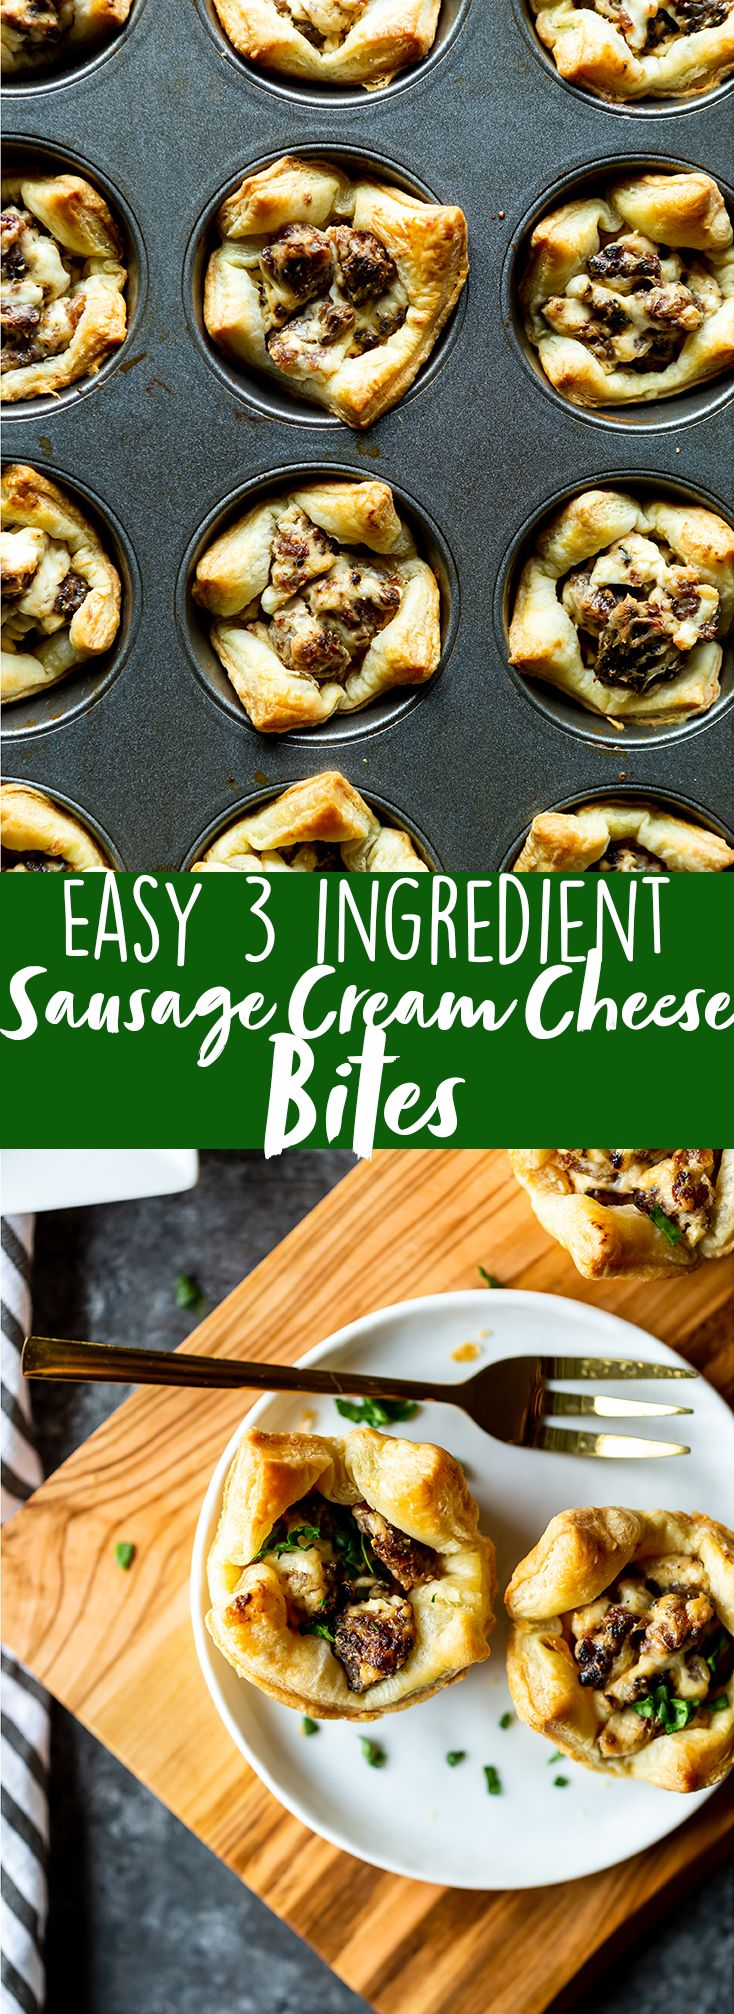 Sausage Cream Cheese Bites